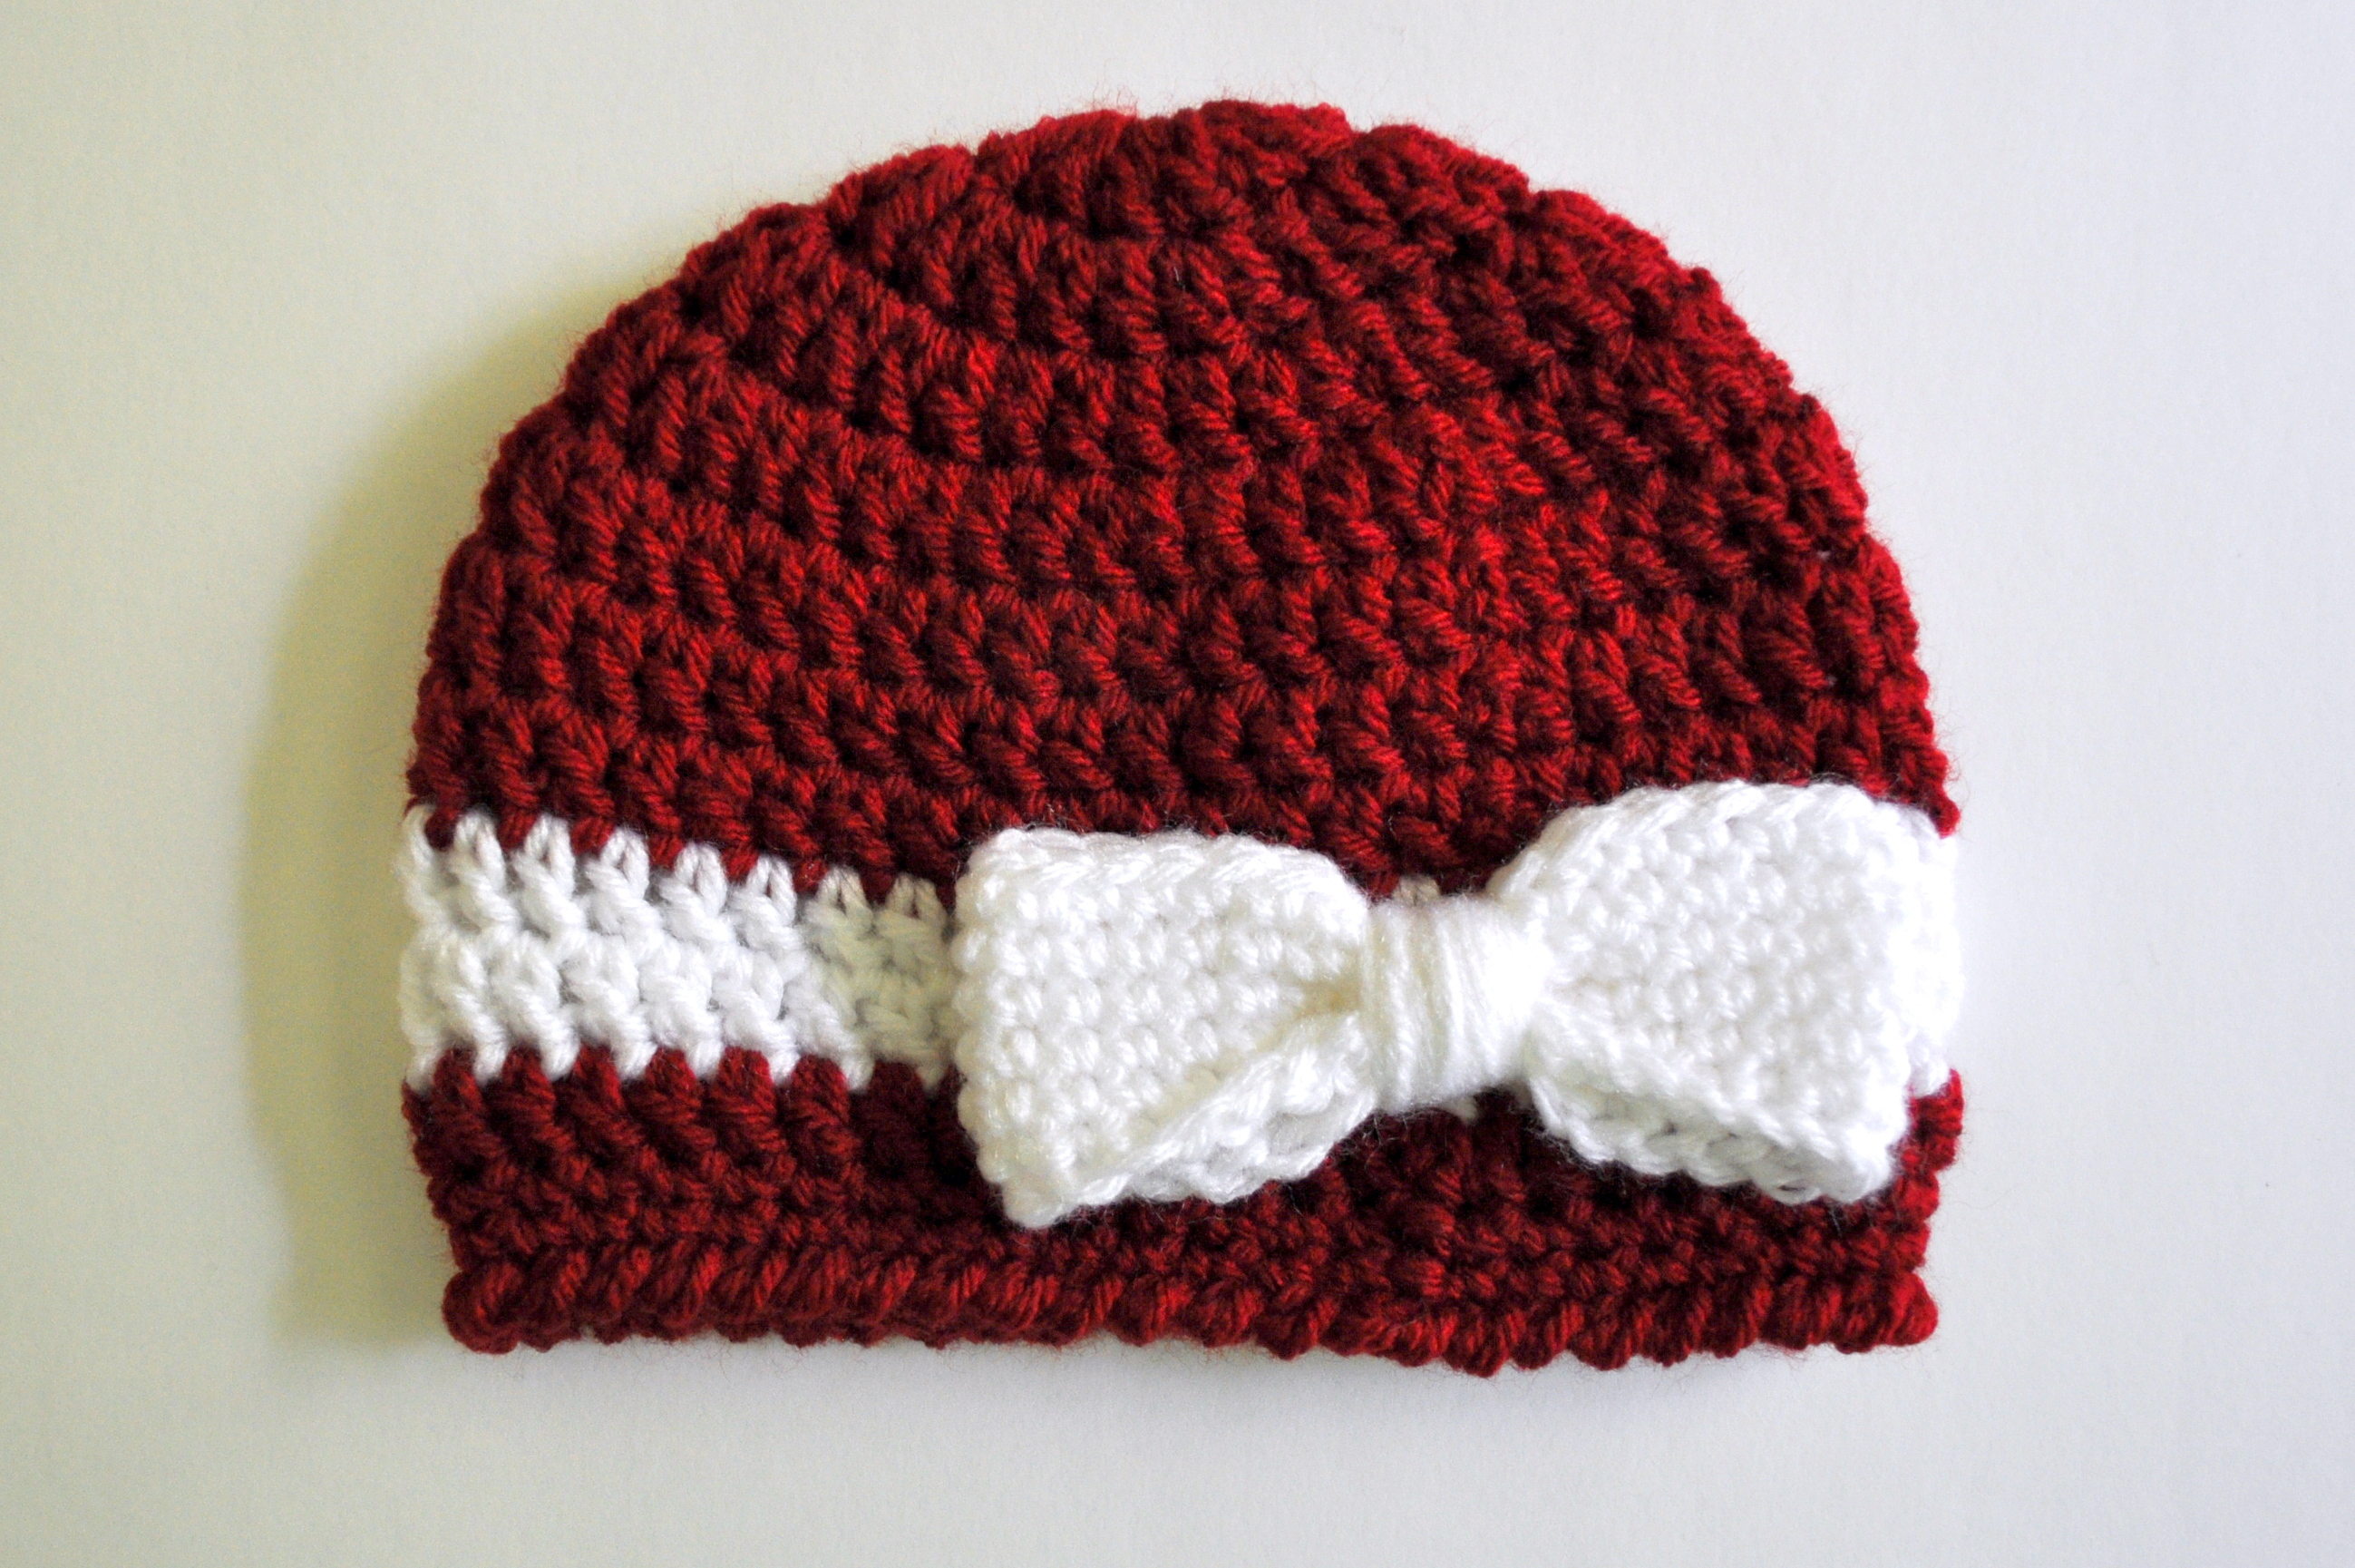 Free Crochet Patterns For Baby And Toddler Hats : Free Pattern: Crochet Bow and Ribbon Baby Hat Classy Crochet